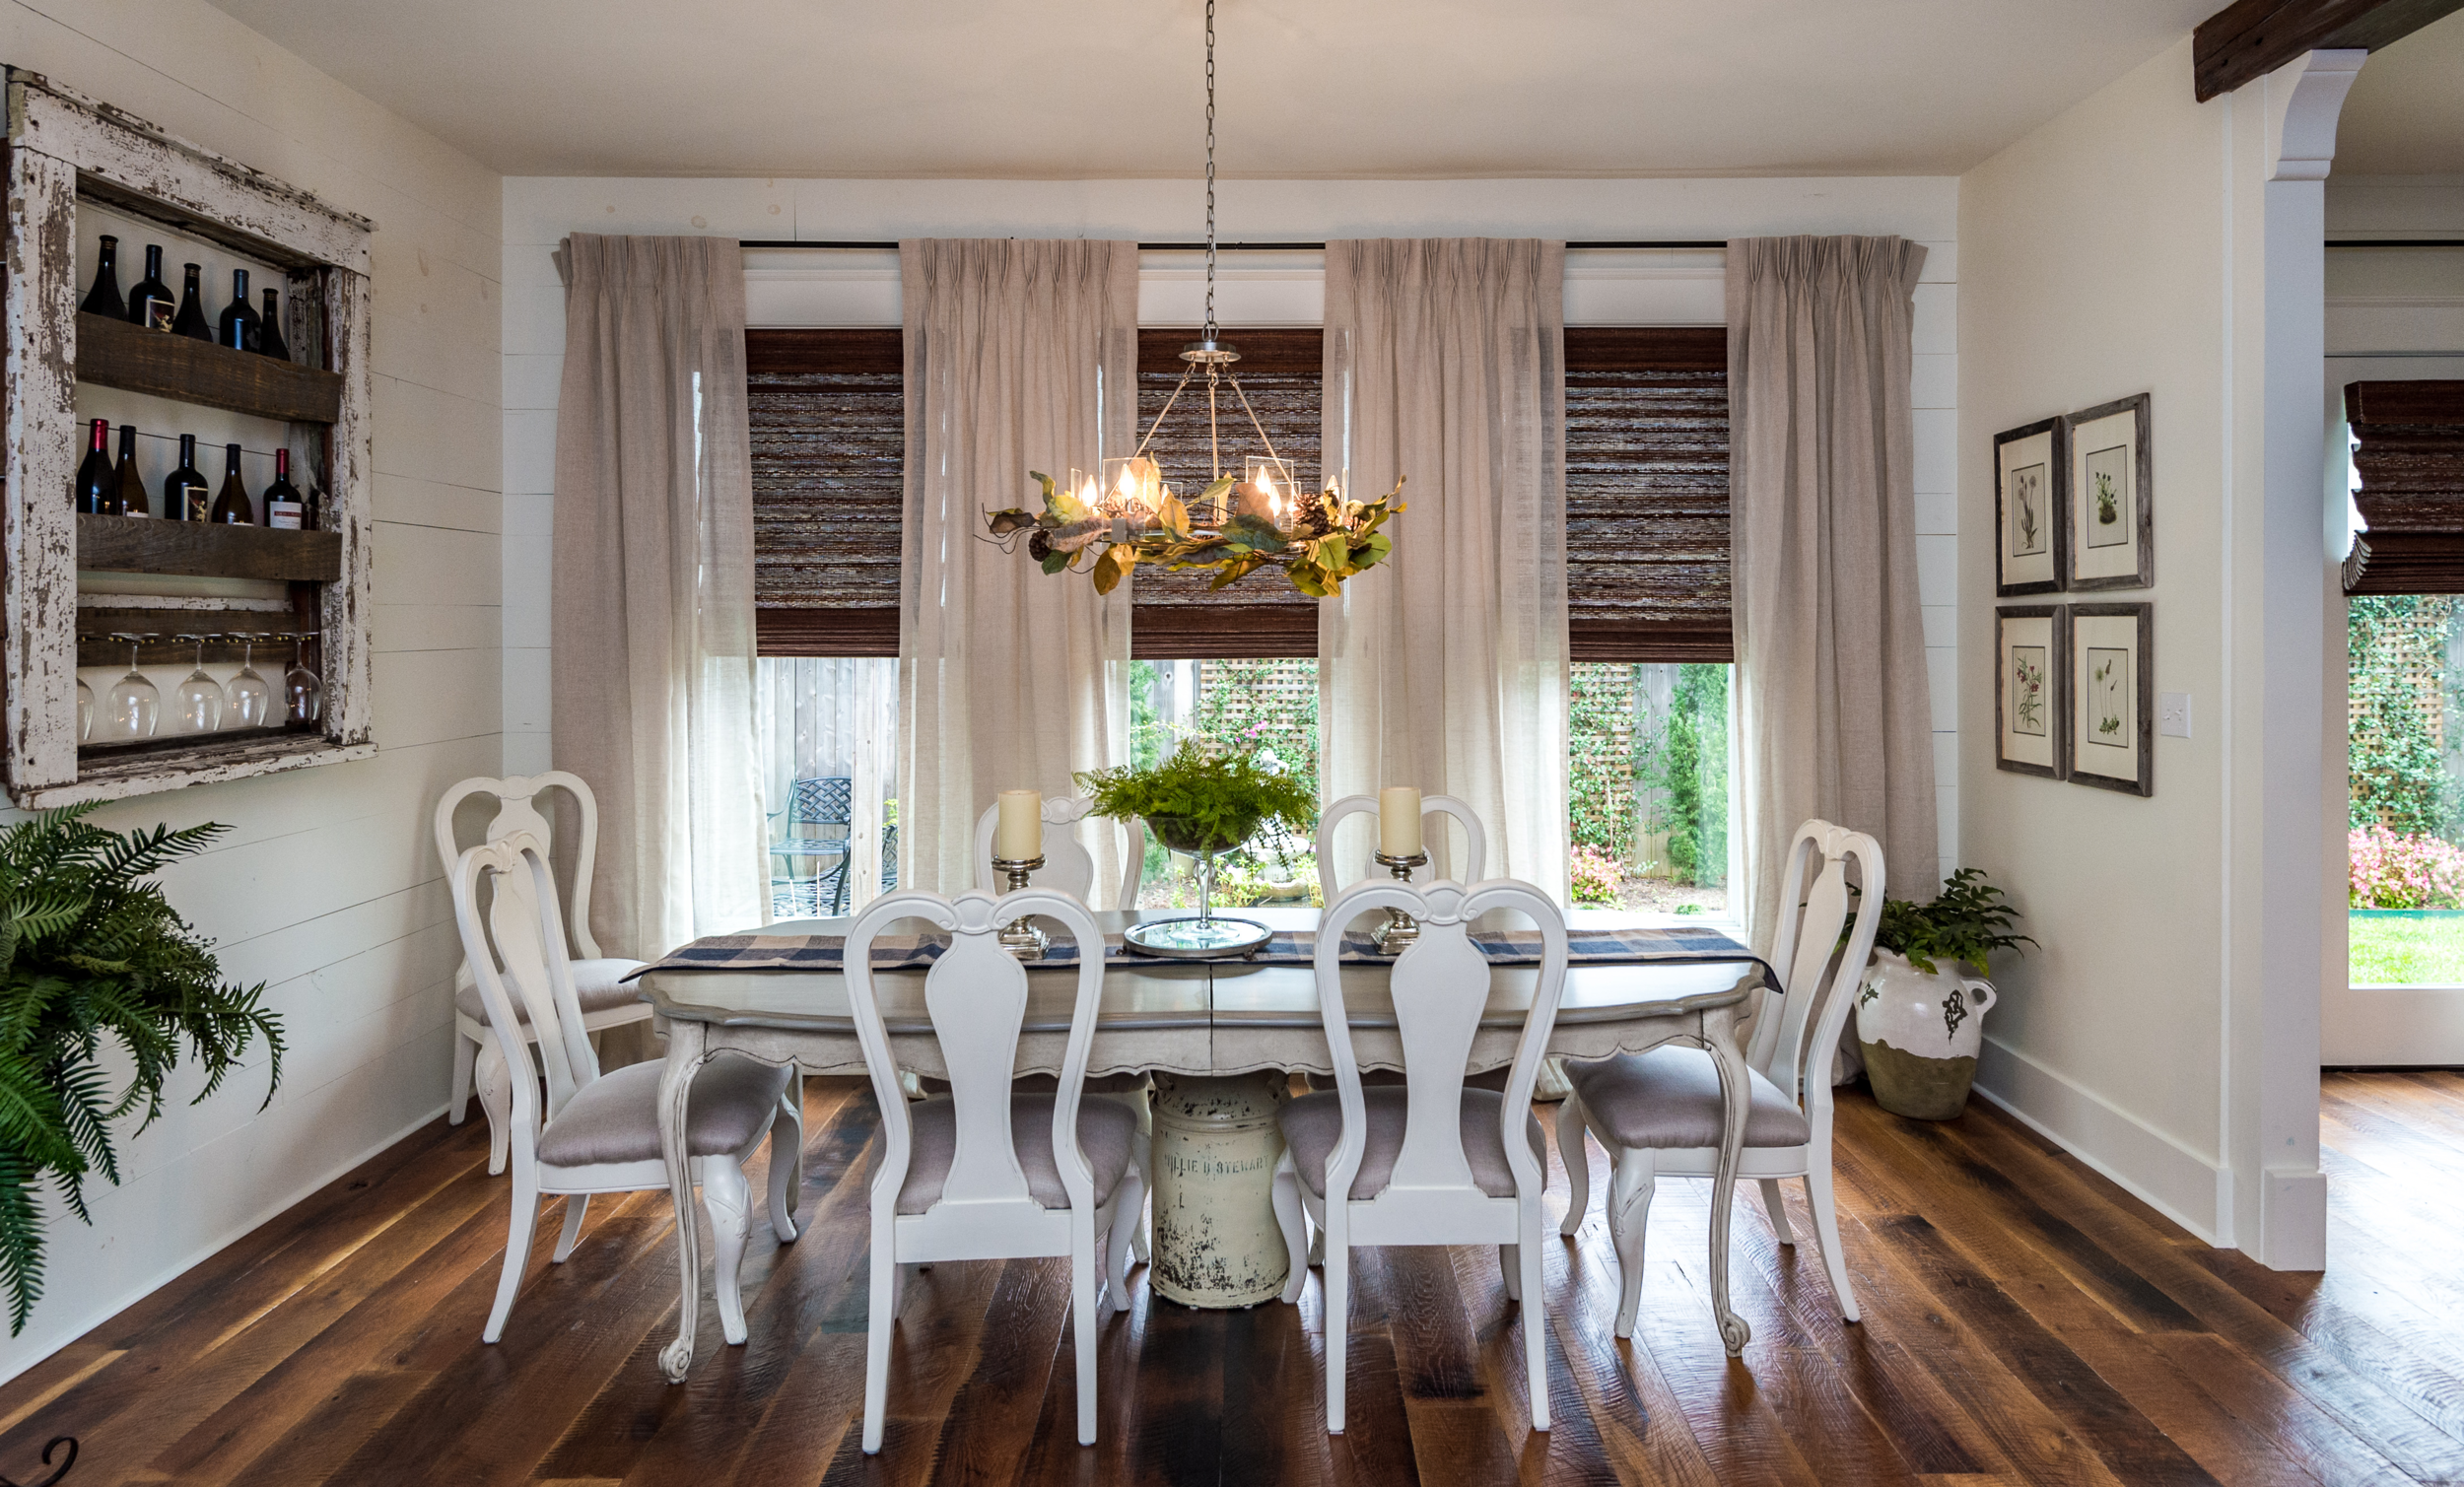 KHB Interiors award winning new orleans interior designer metairie decorator interiors garden district new orleans table shot.png